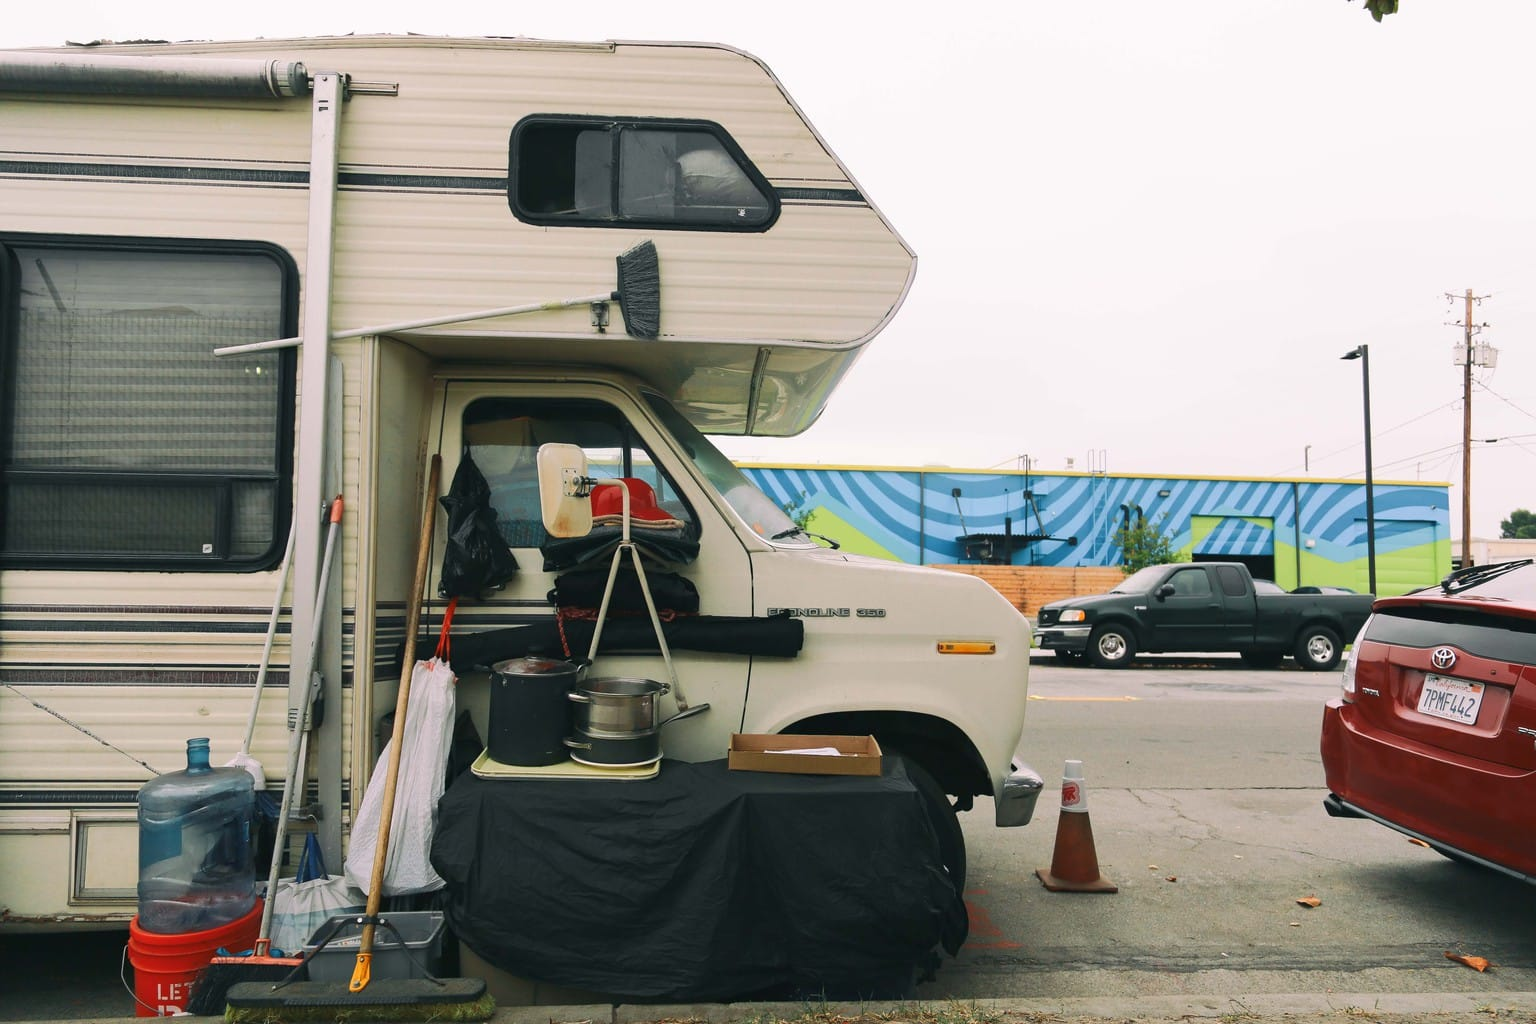 Anaheim's New Oversized Vehicle Parking Ban Leaves RV Dwellers